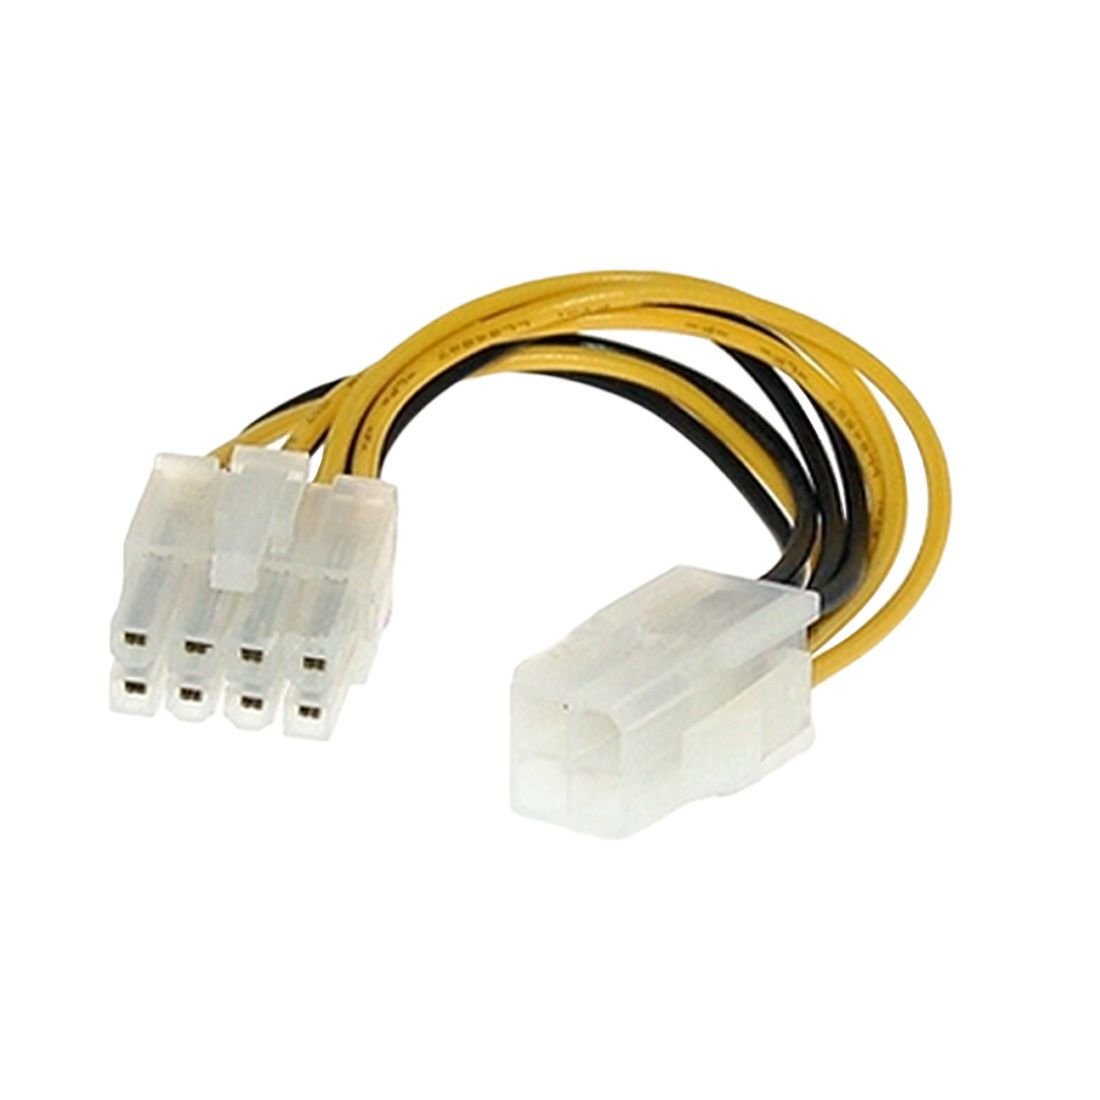 Unbrand Data Sync Charge Cables Ebay Phones Accessories Products Electrical Wiring 109aud Hot 4pin Male To 8pin Female Pin Cpu Power Convertor Adapter Cable Connectors